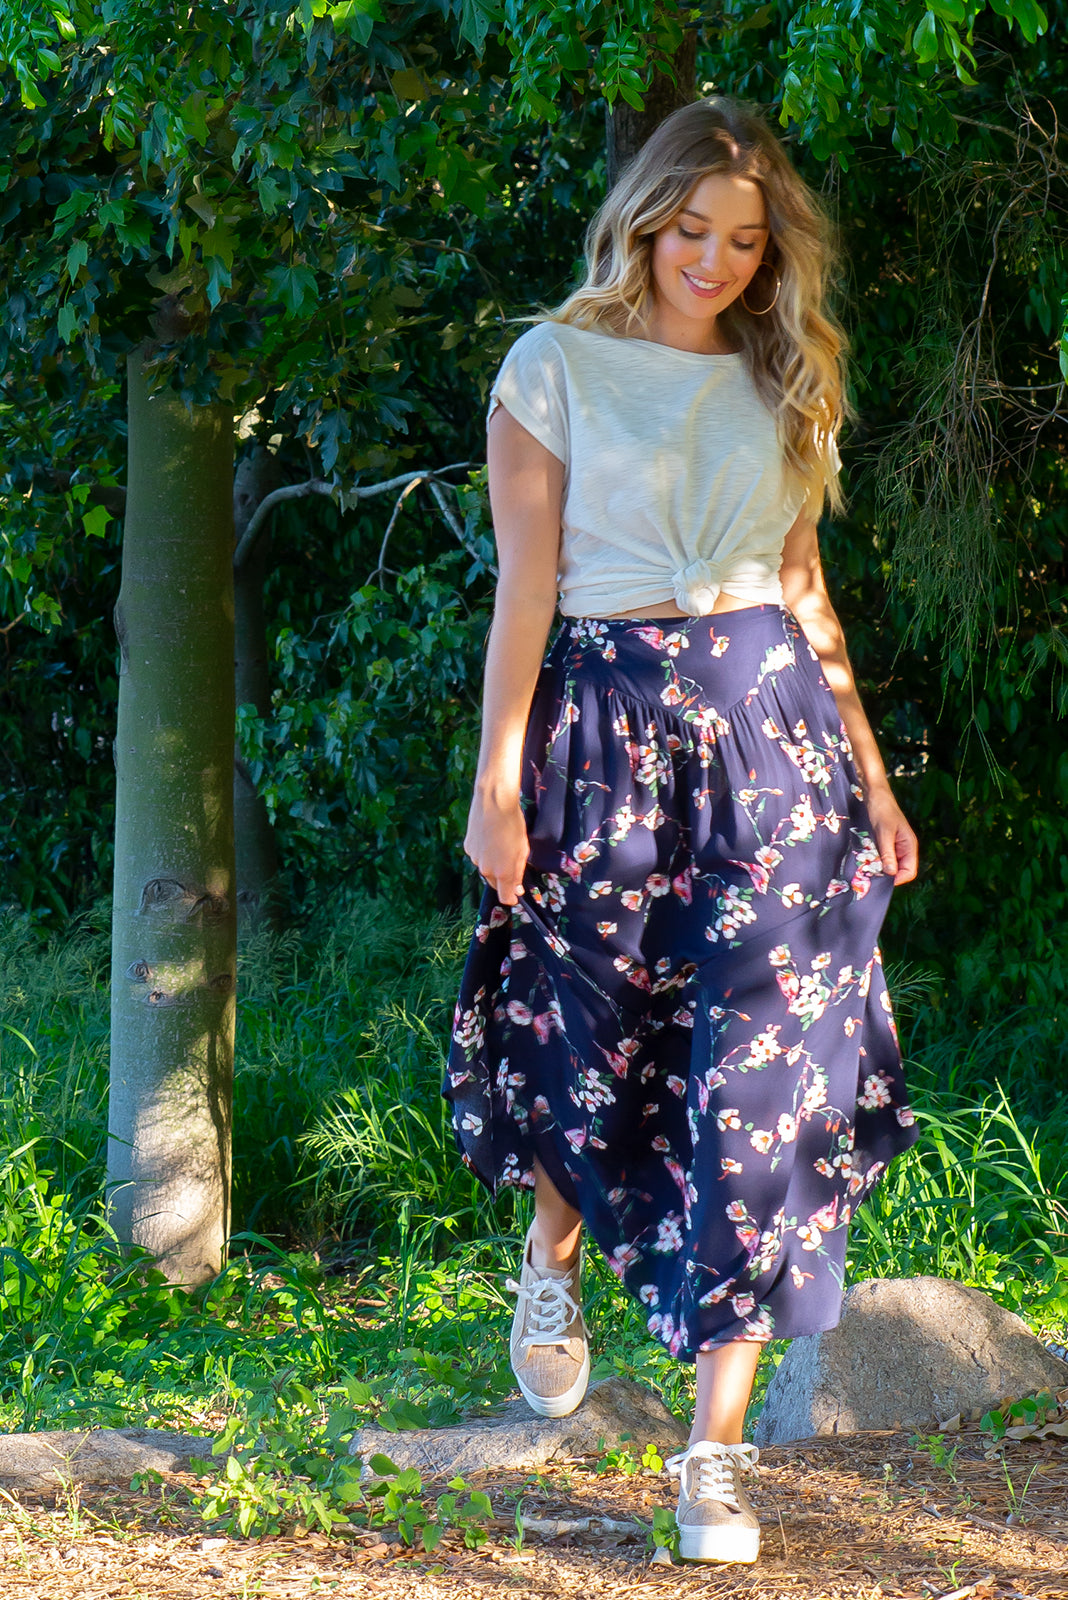 Sails Navy Sparrow Maxi Skirt with a soft ruched elastic back and pockets in a gorgeous dark inky navy delicate floral print on rayon fabric